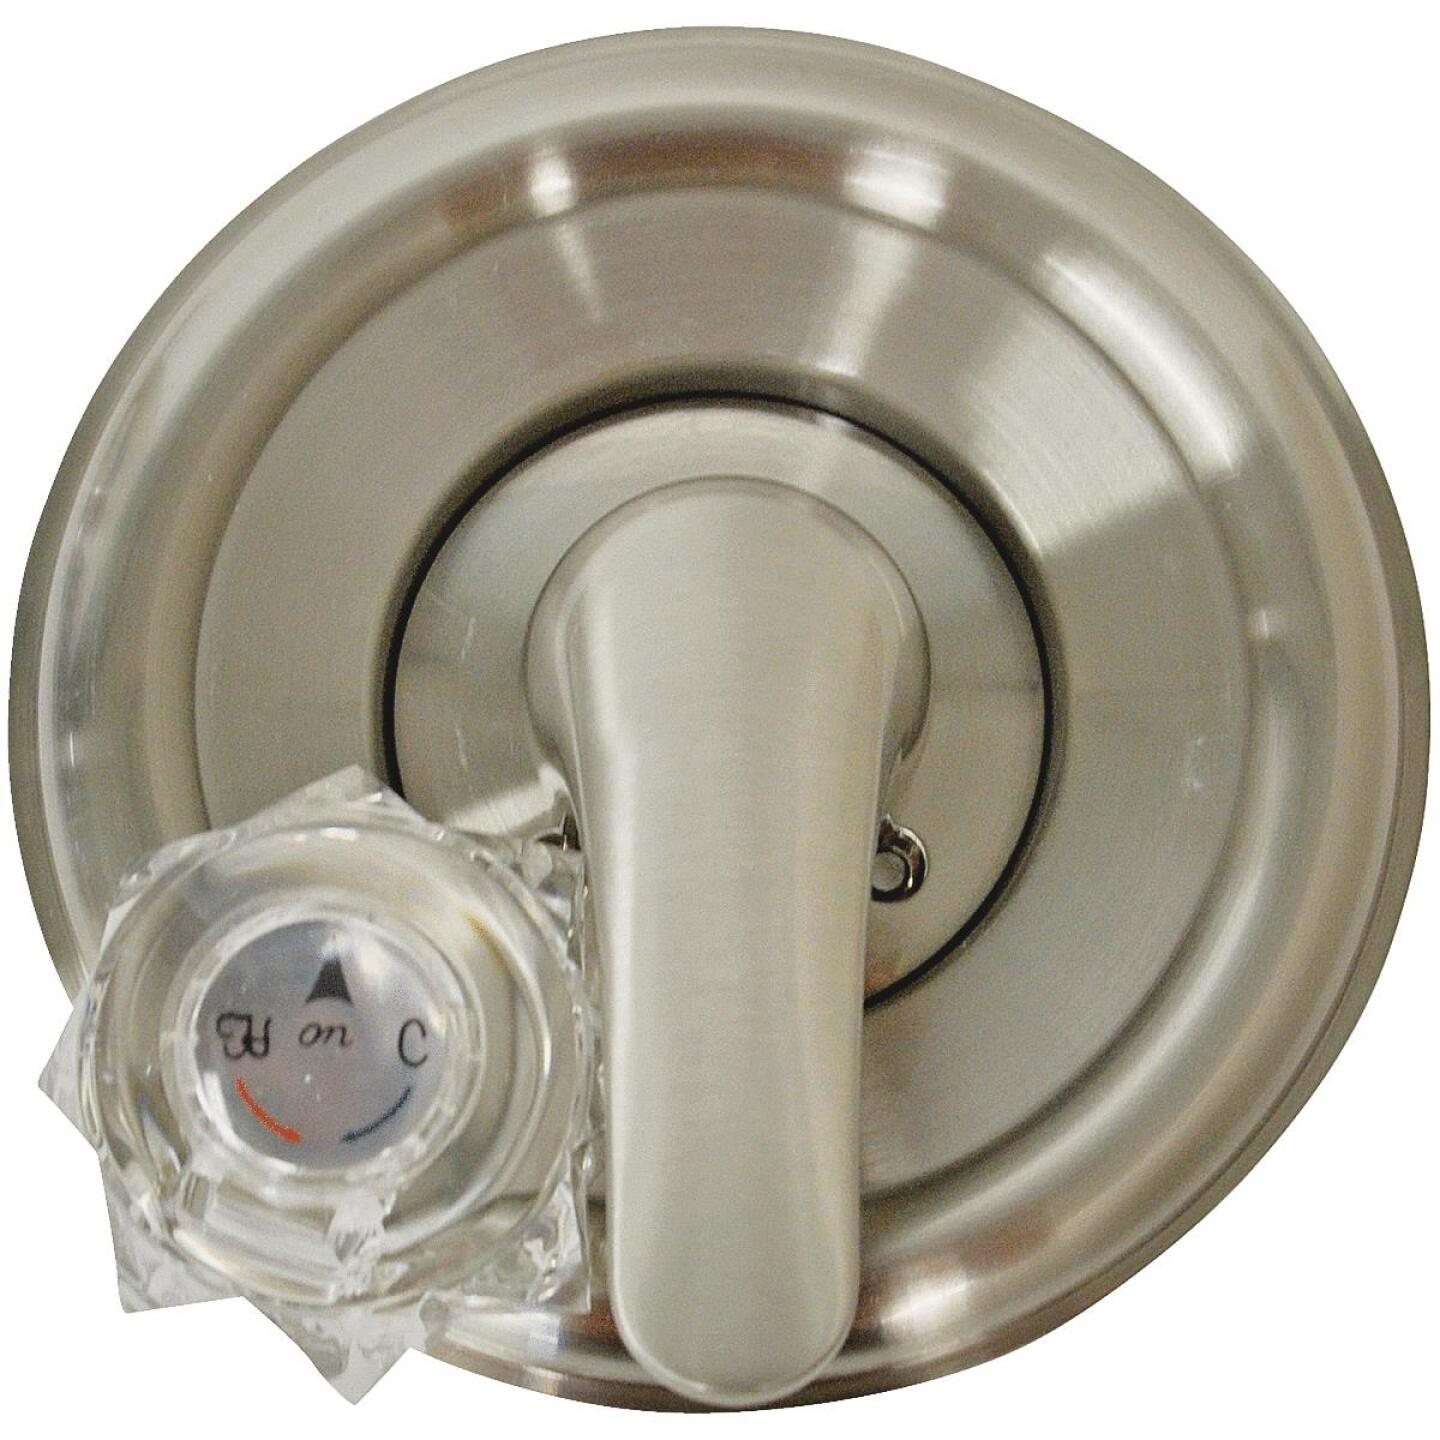 Danco Universal Delta Tub and Shower Trim Kit, Brushed Nickel Image 1